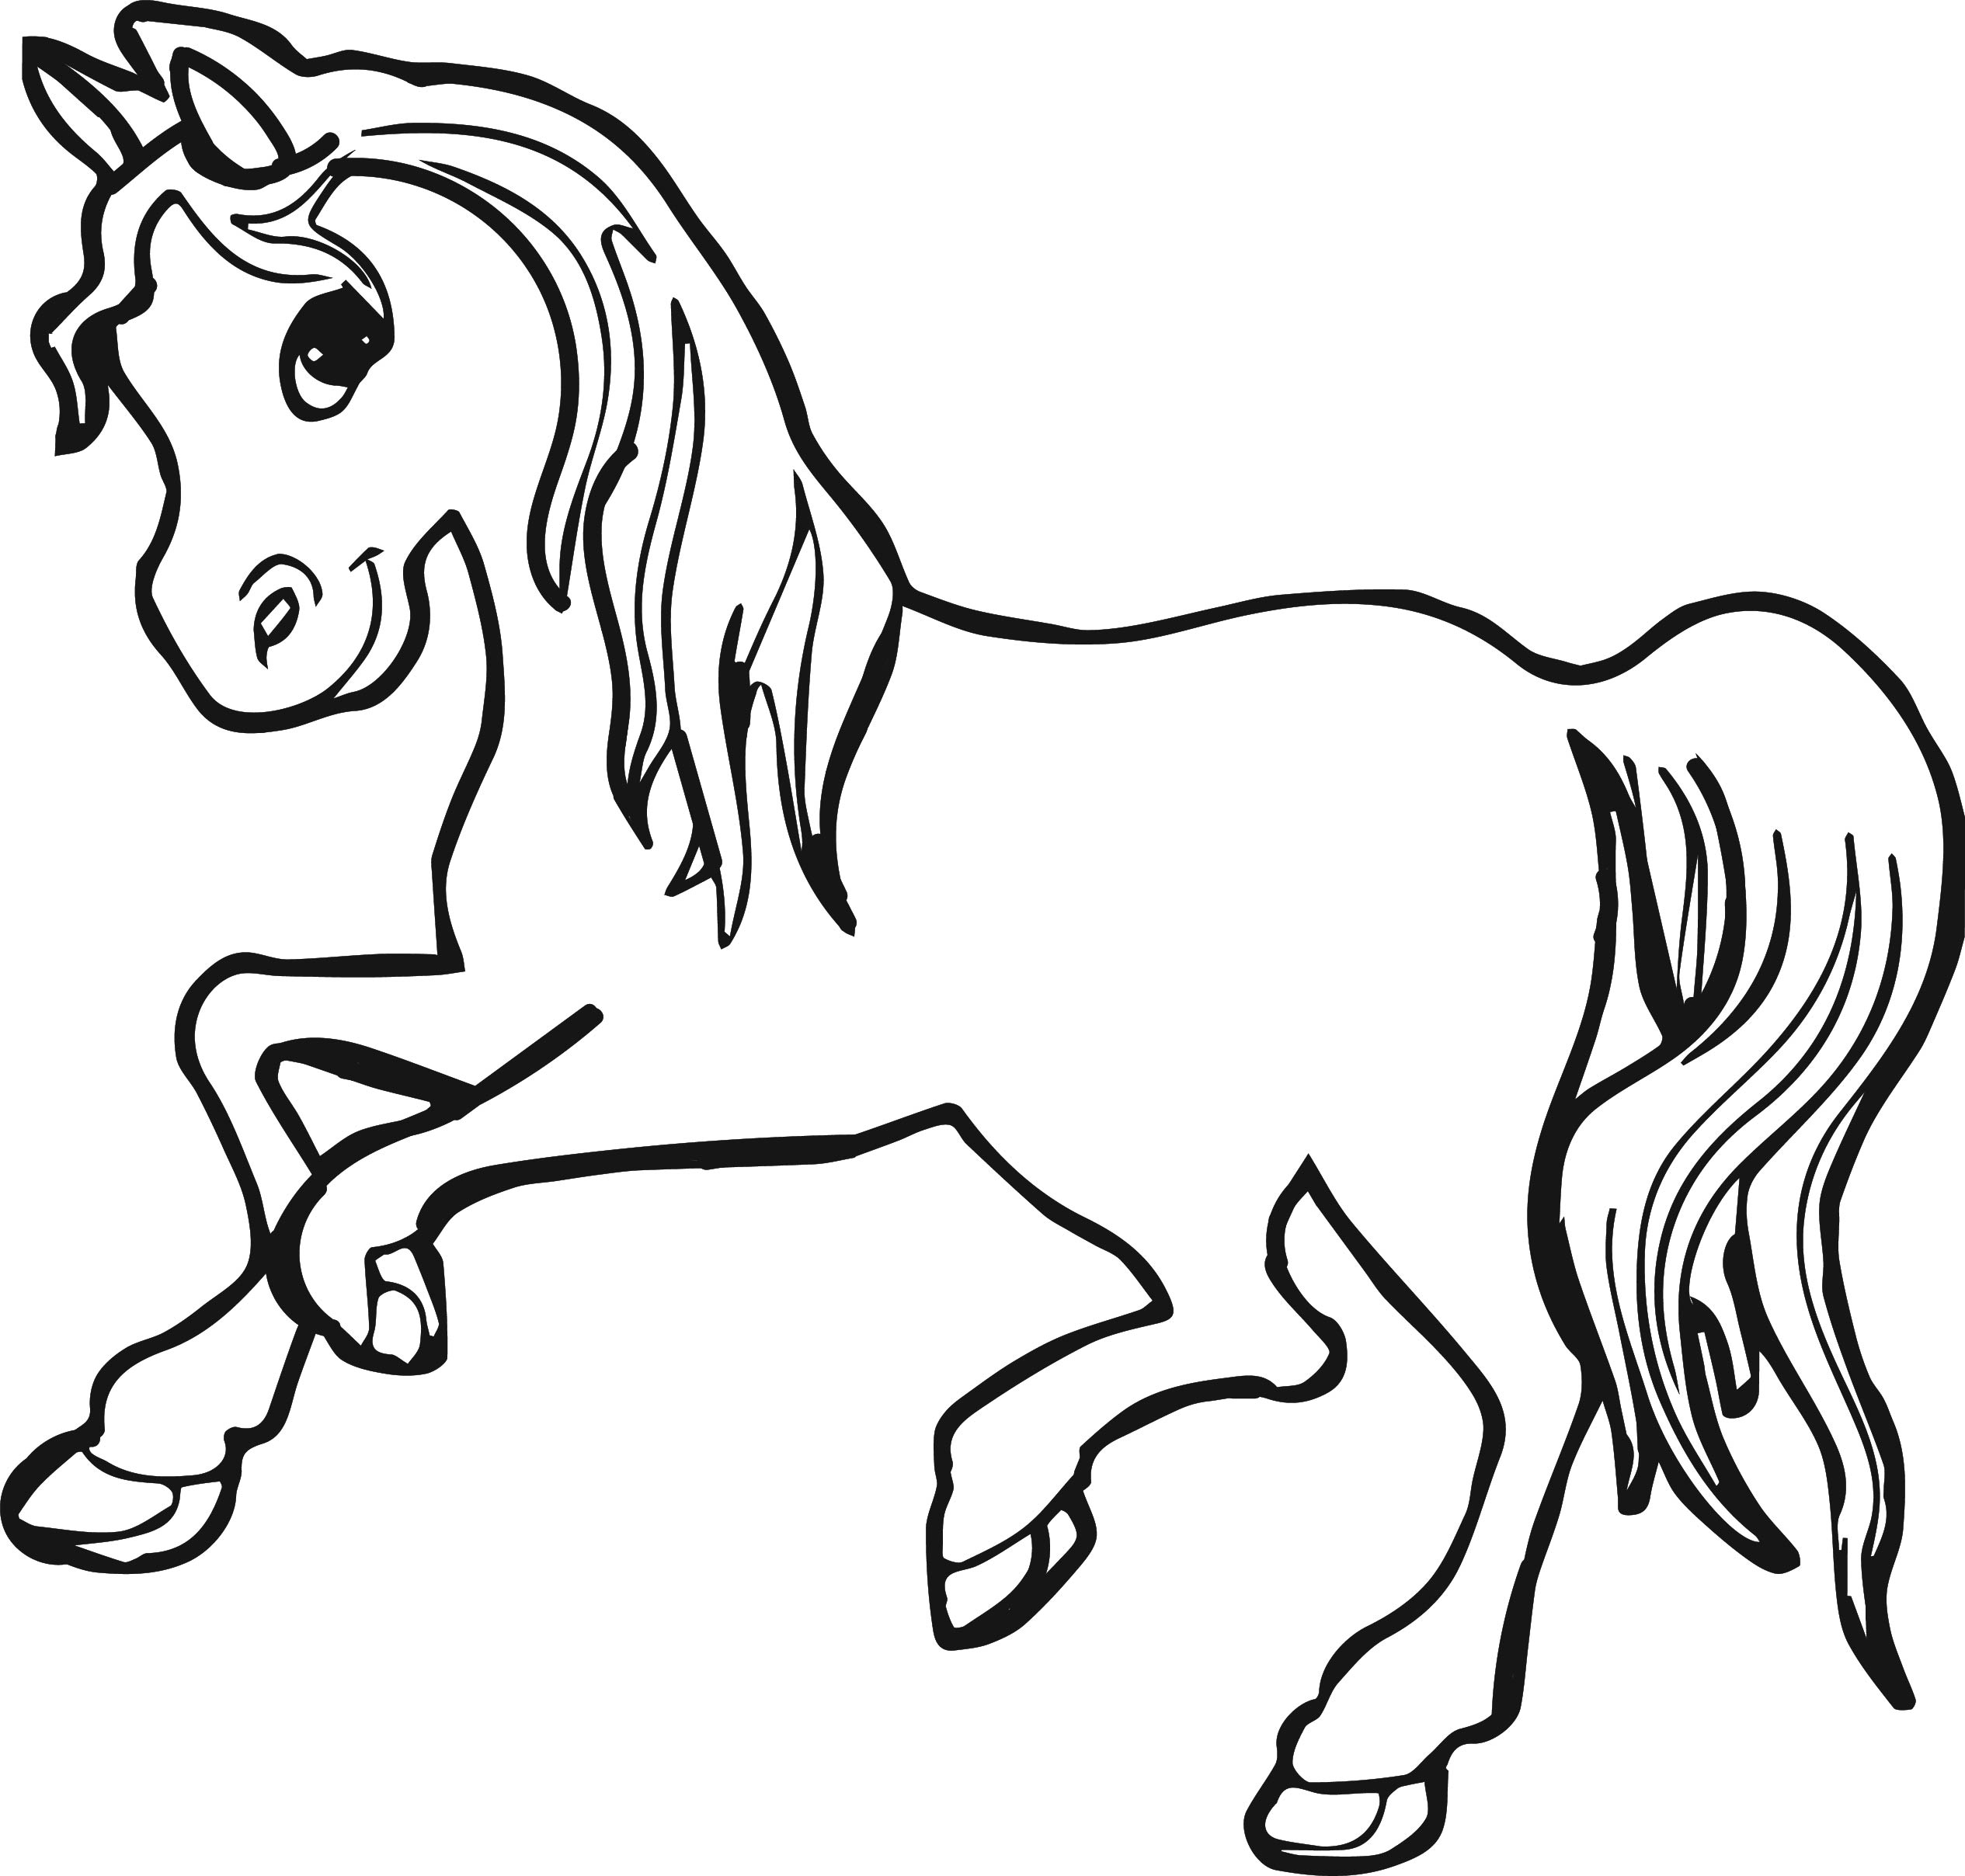 horse pictures to color horse free to color for children trotting horse horses pictures color horse to